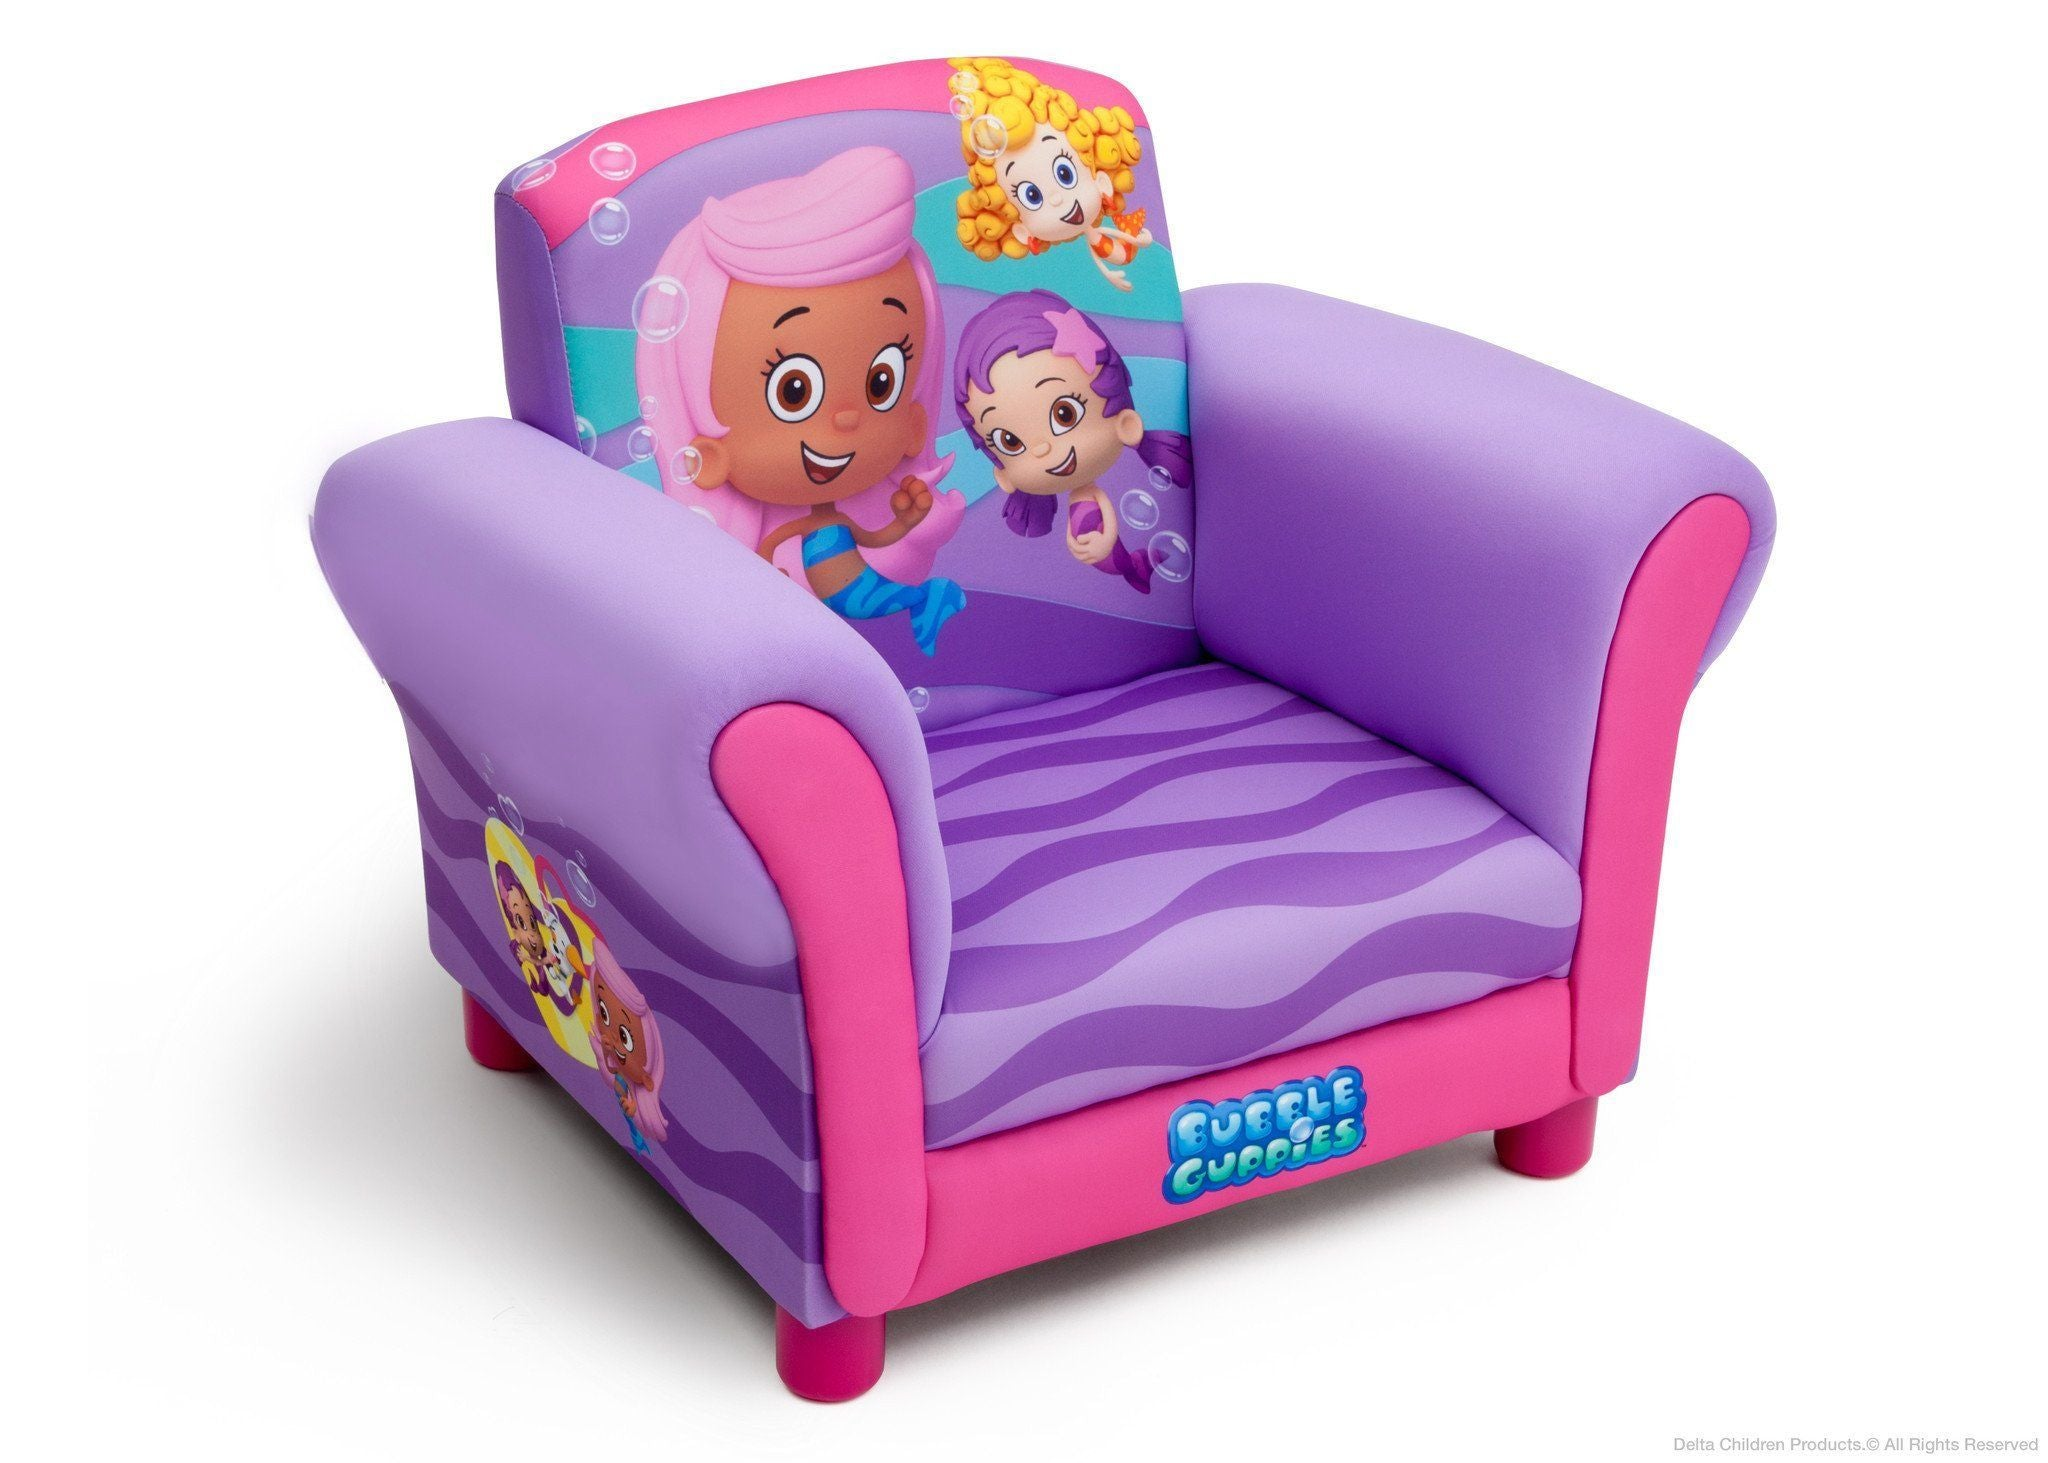 Delta Children Style 2 Bubble Guppies Upholstered Chair b2b